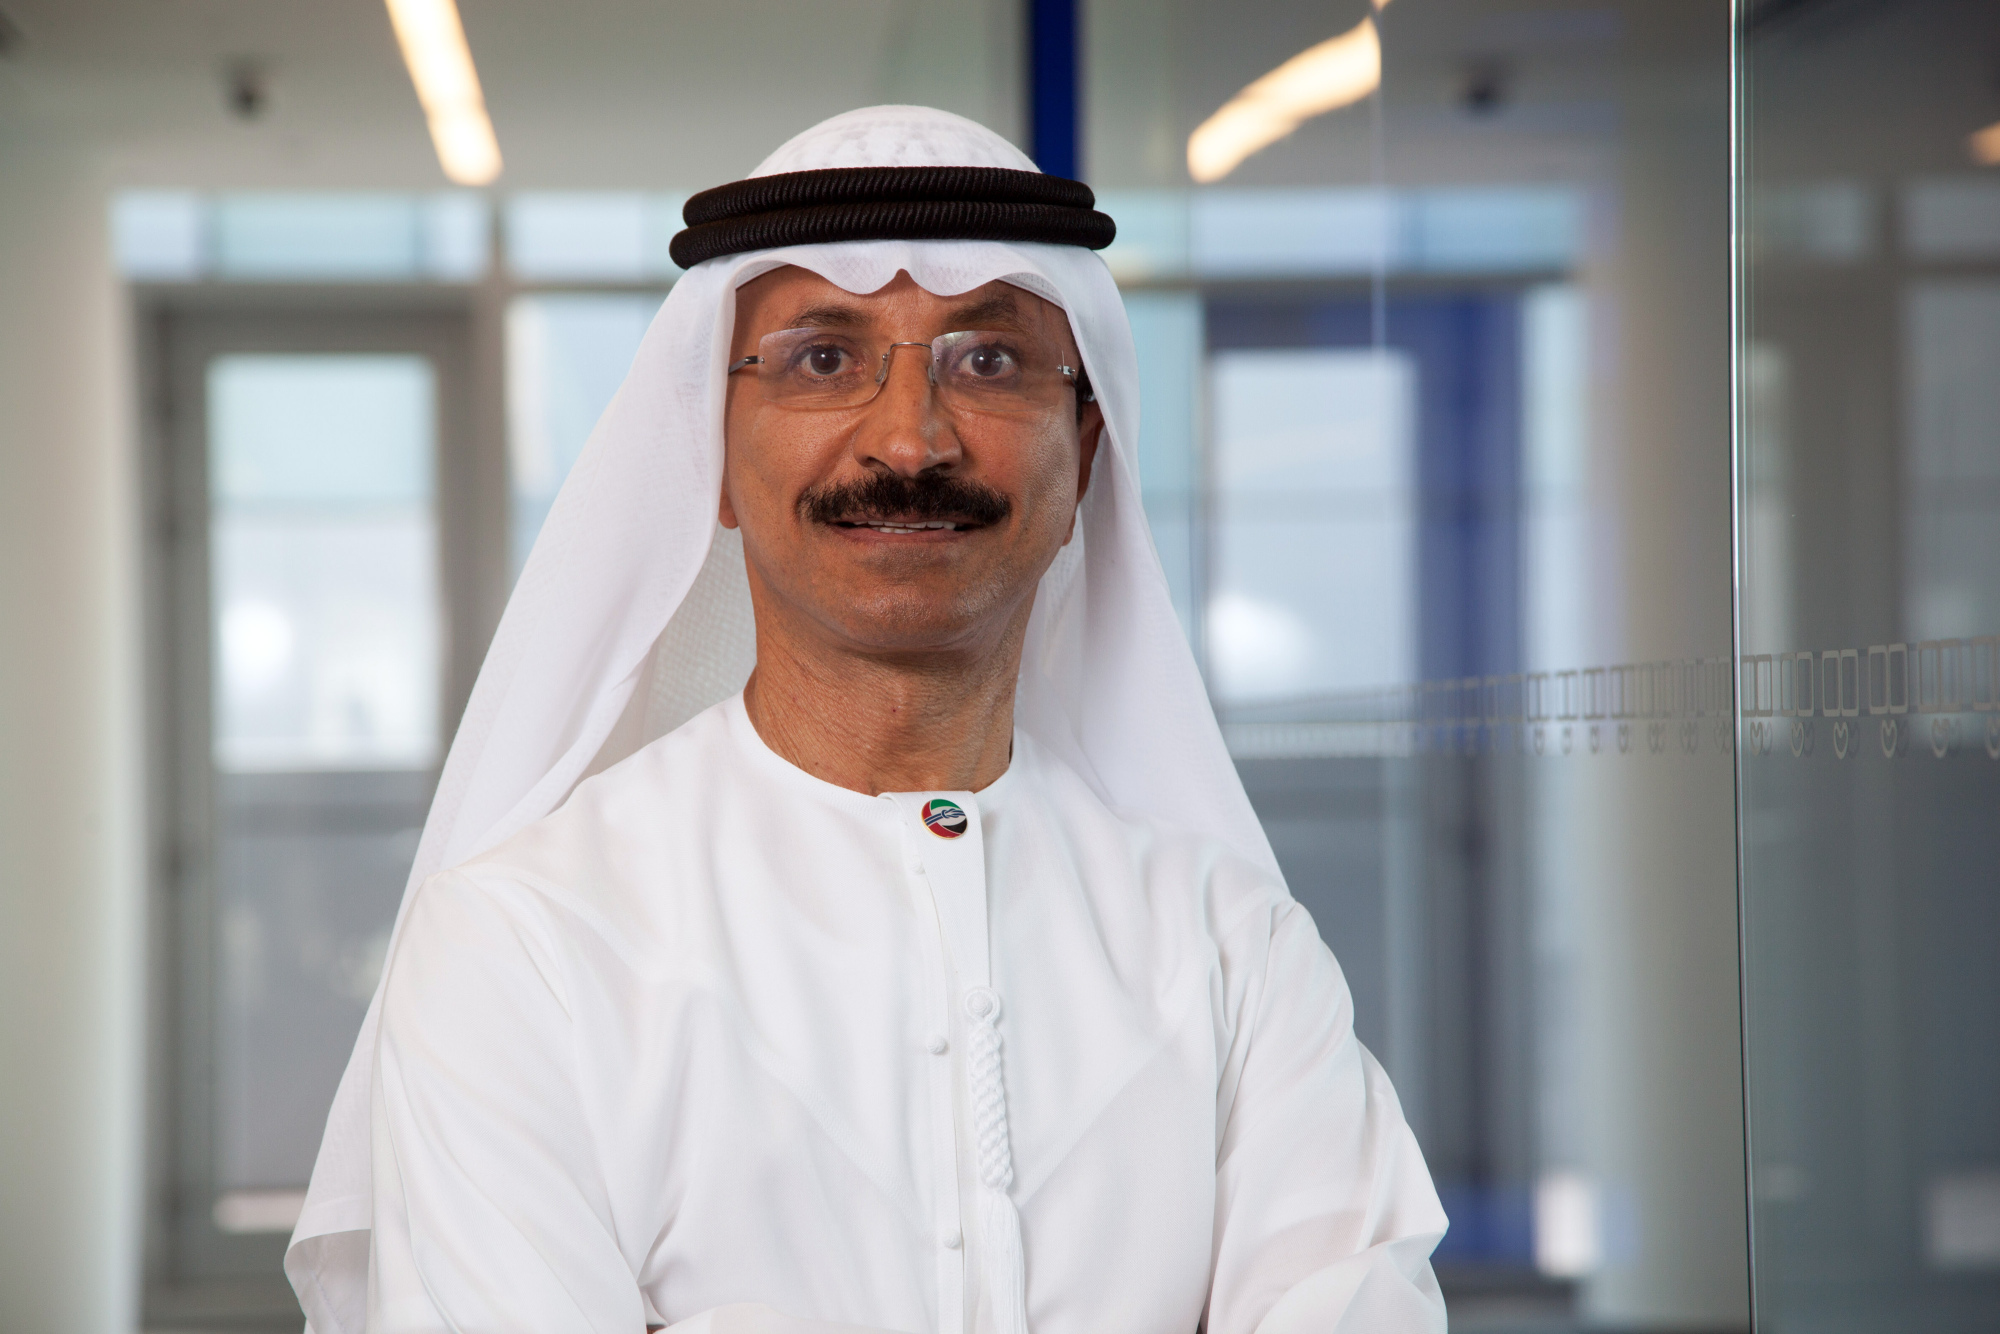 DP World Sees Key Role for Once-Isolated State in Ports Plan